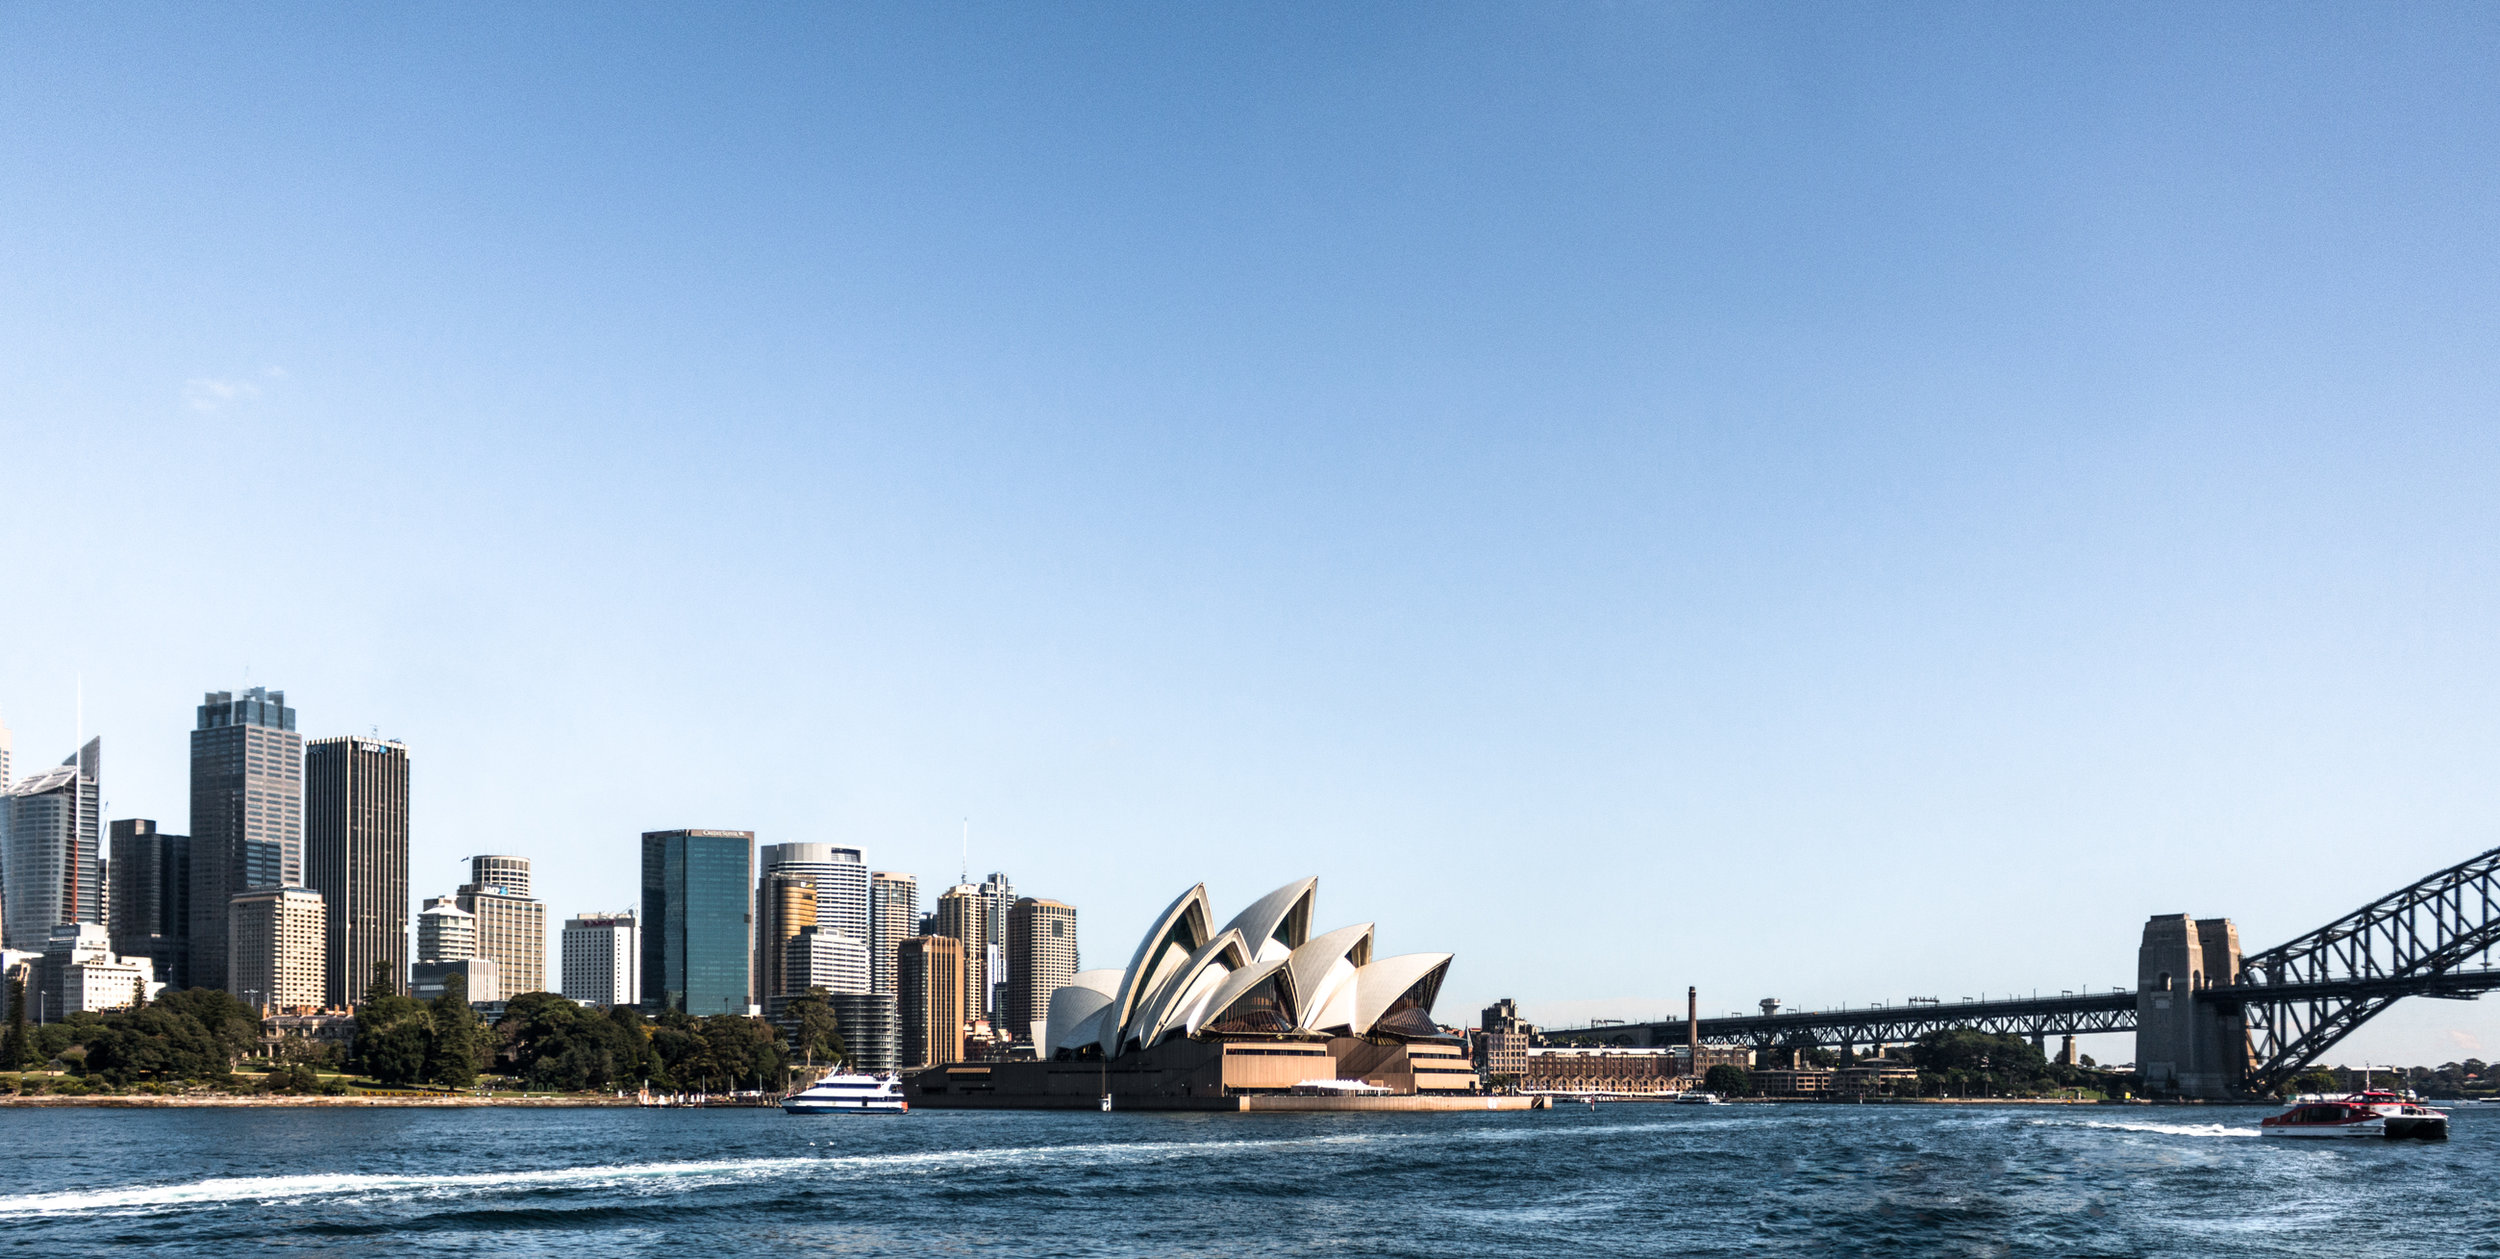 Sydney Opera House - Photography by Mike Dugenio (9 of 9).jpg